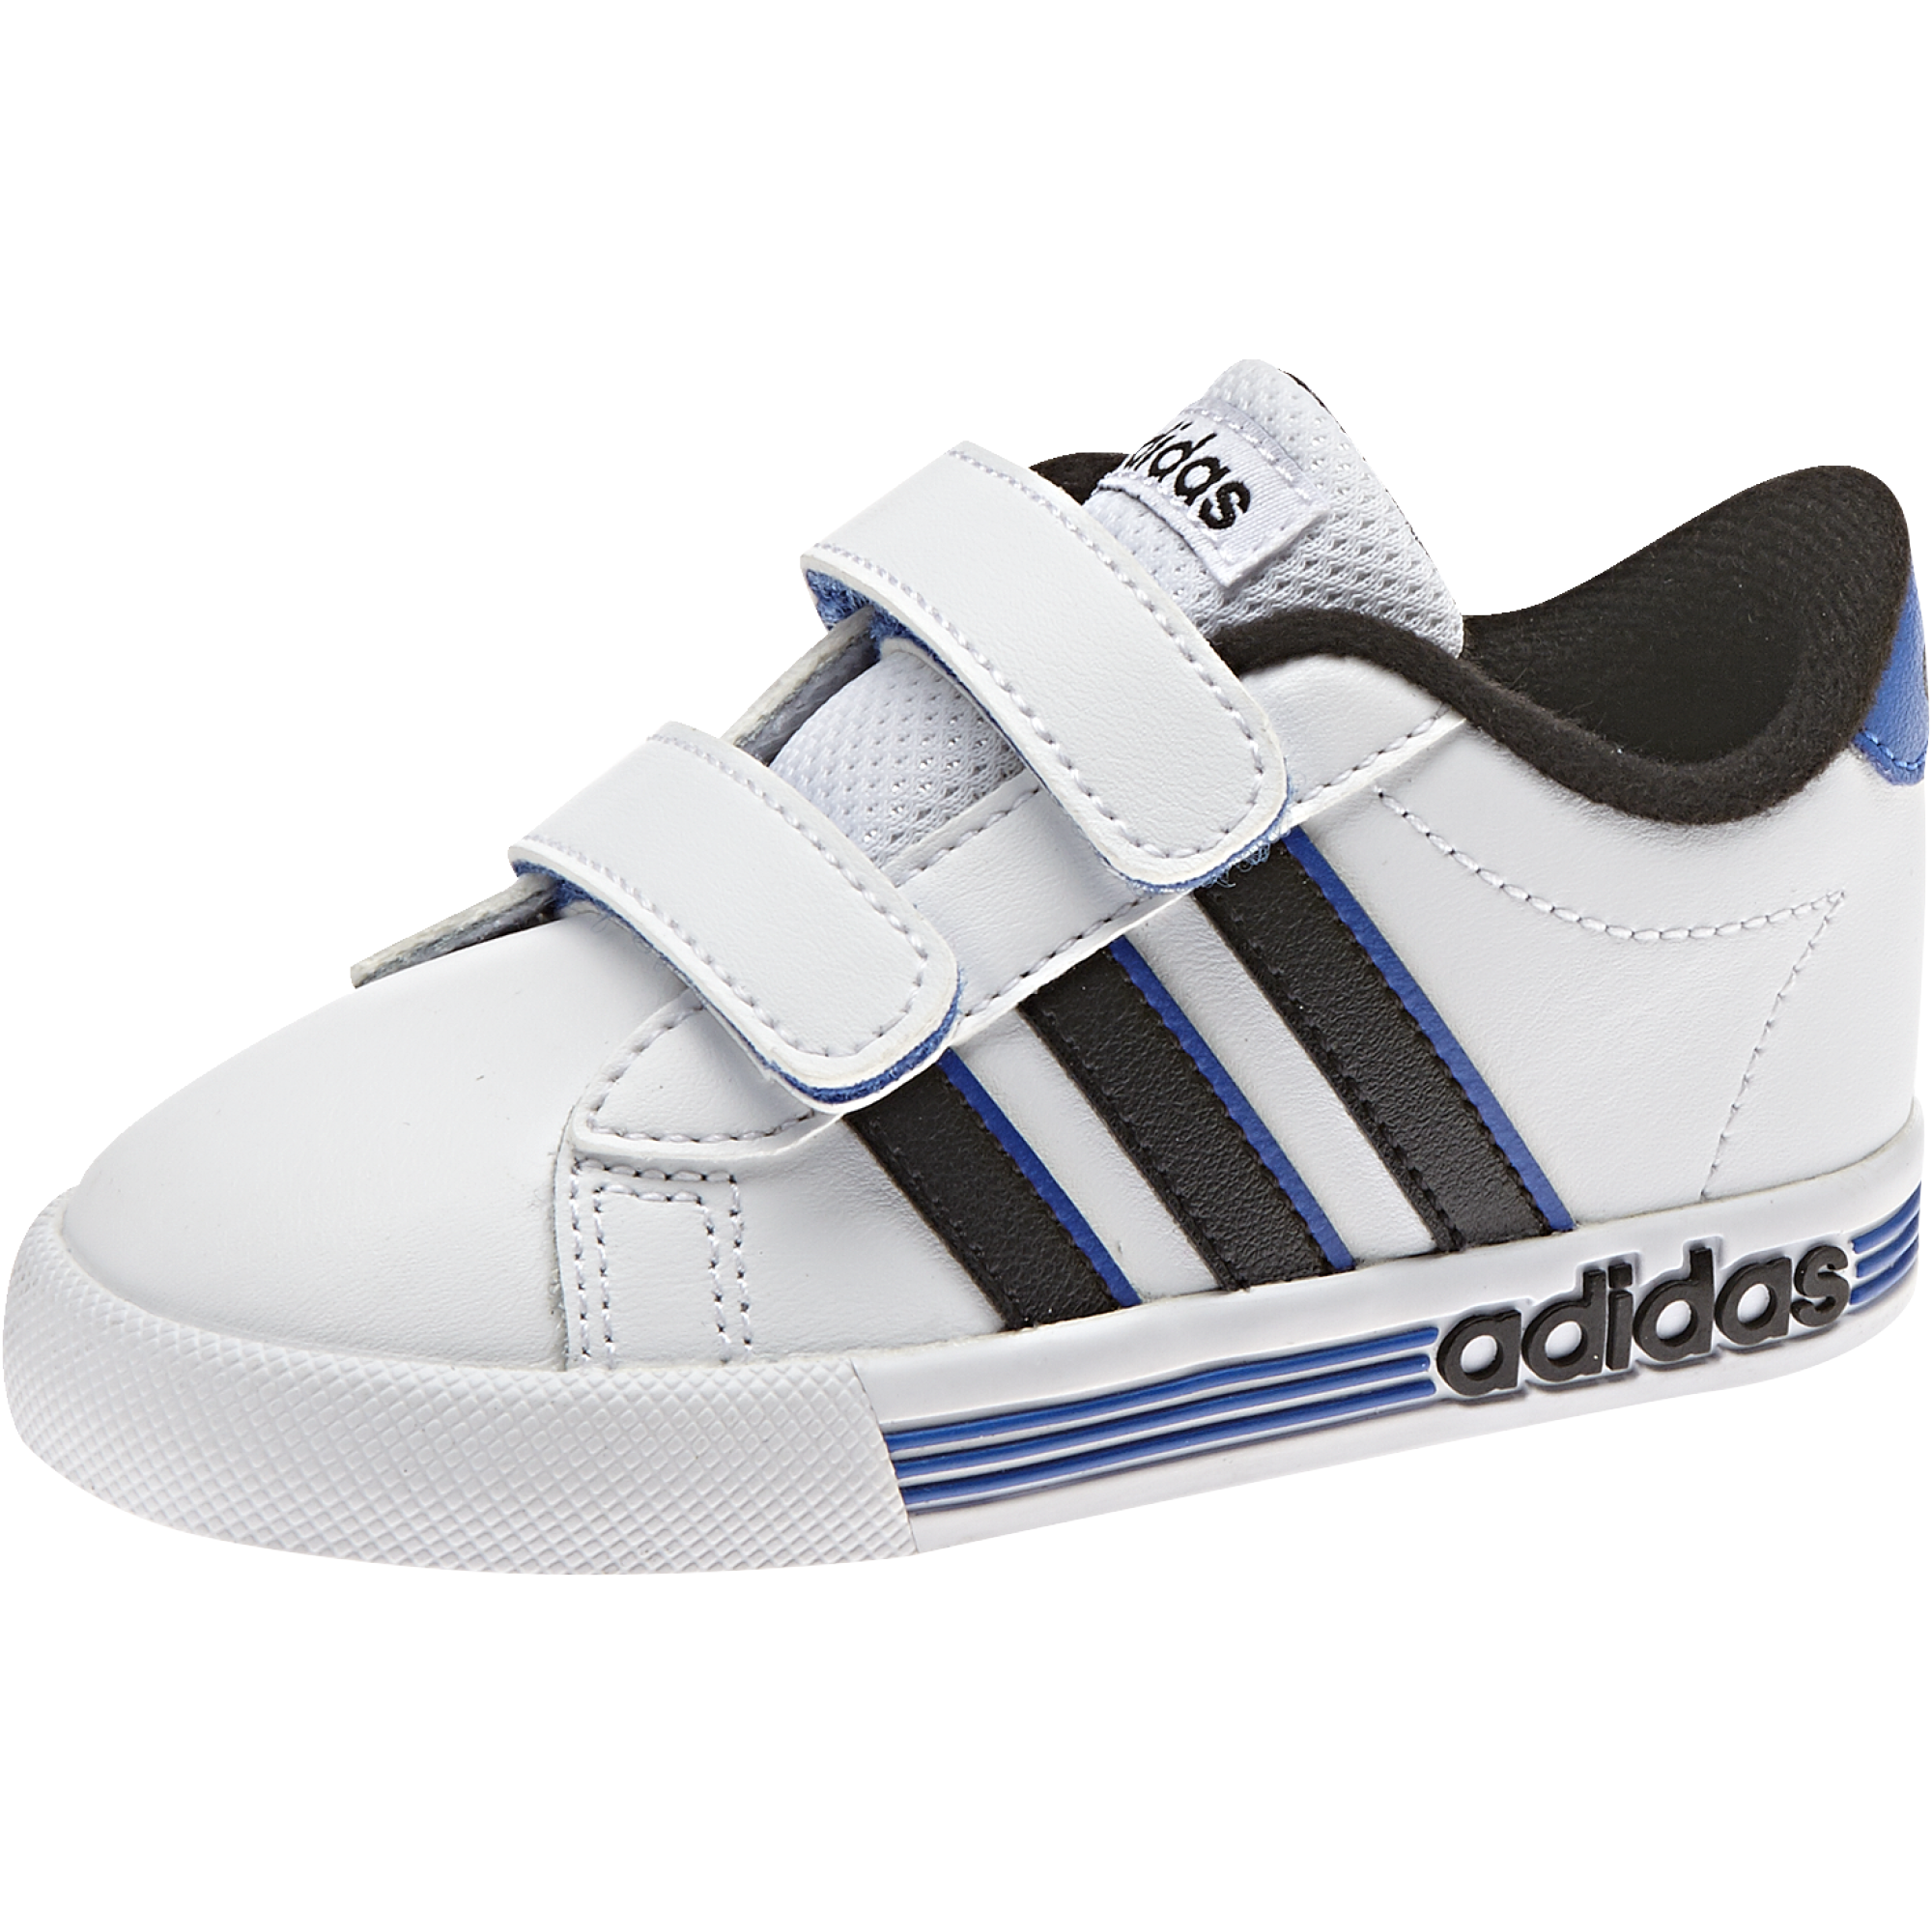 Sizes: 5 10 US Inf Toddler boys Shoes : NZ's Leading